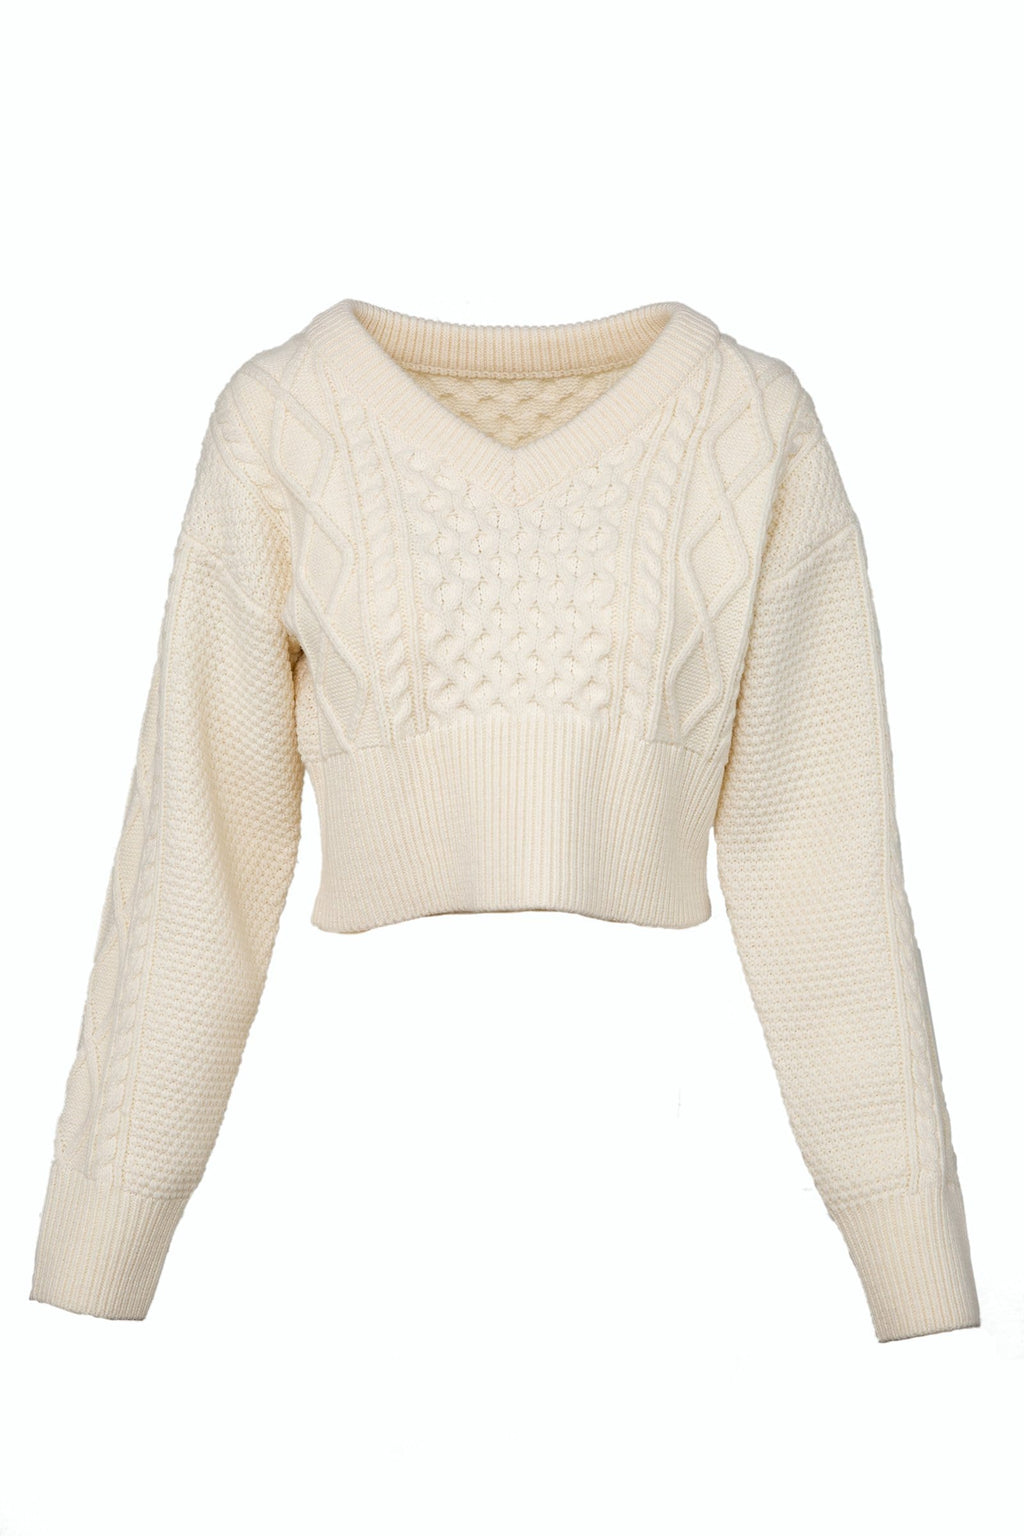 Lexi White V-Neck Sweater by J.ING women's clothing